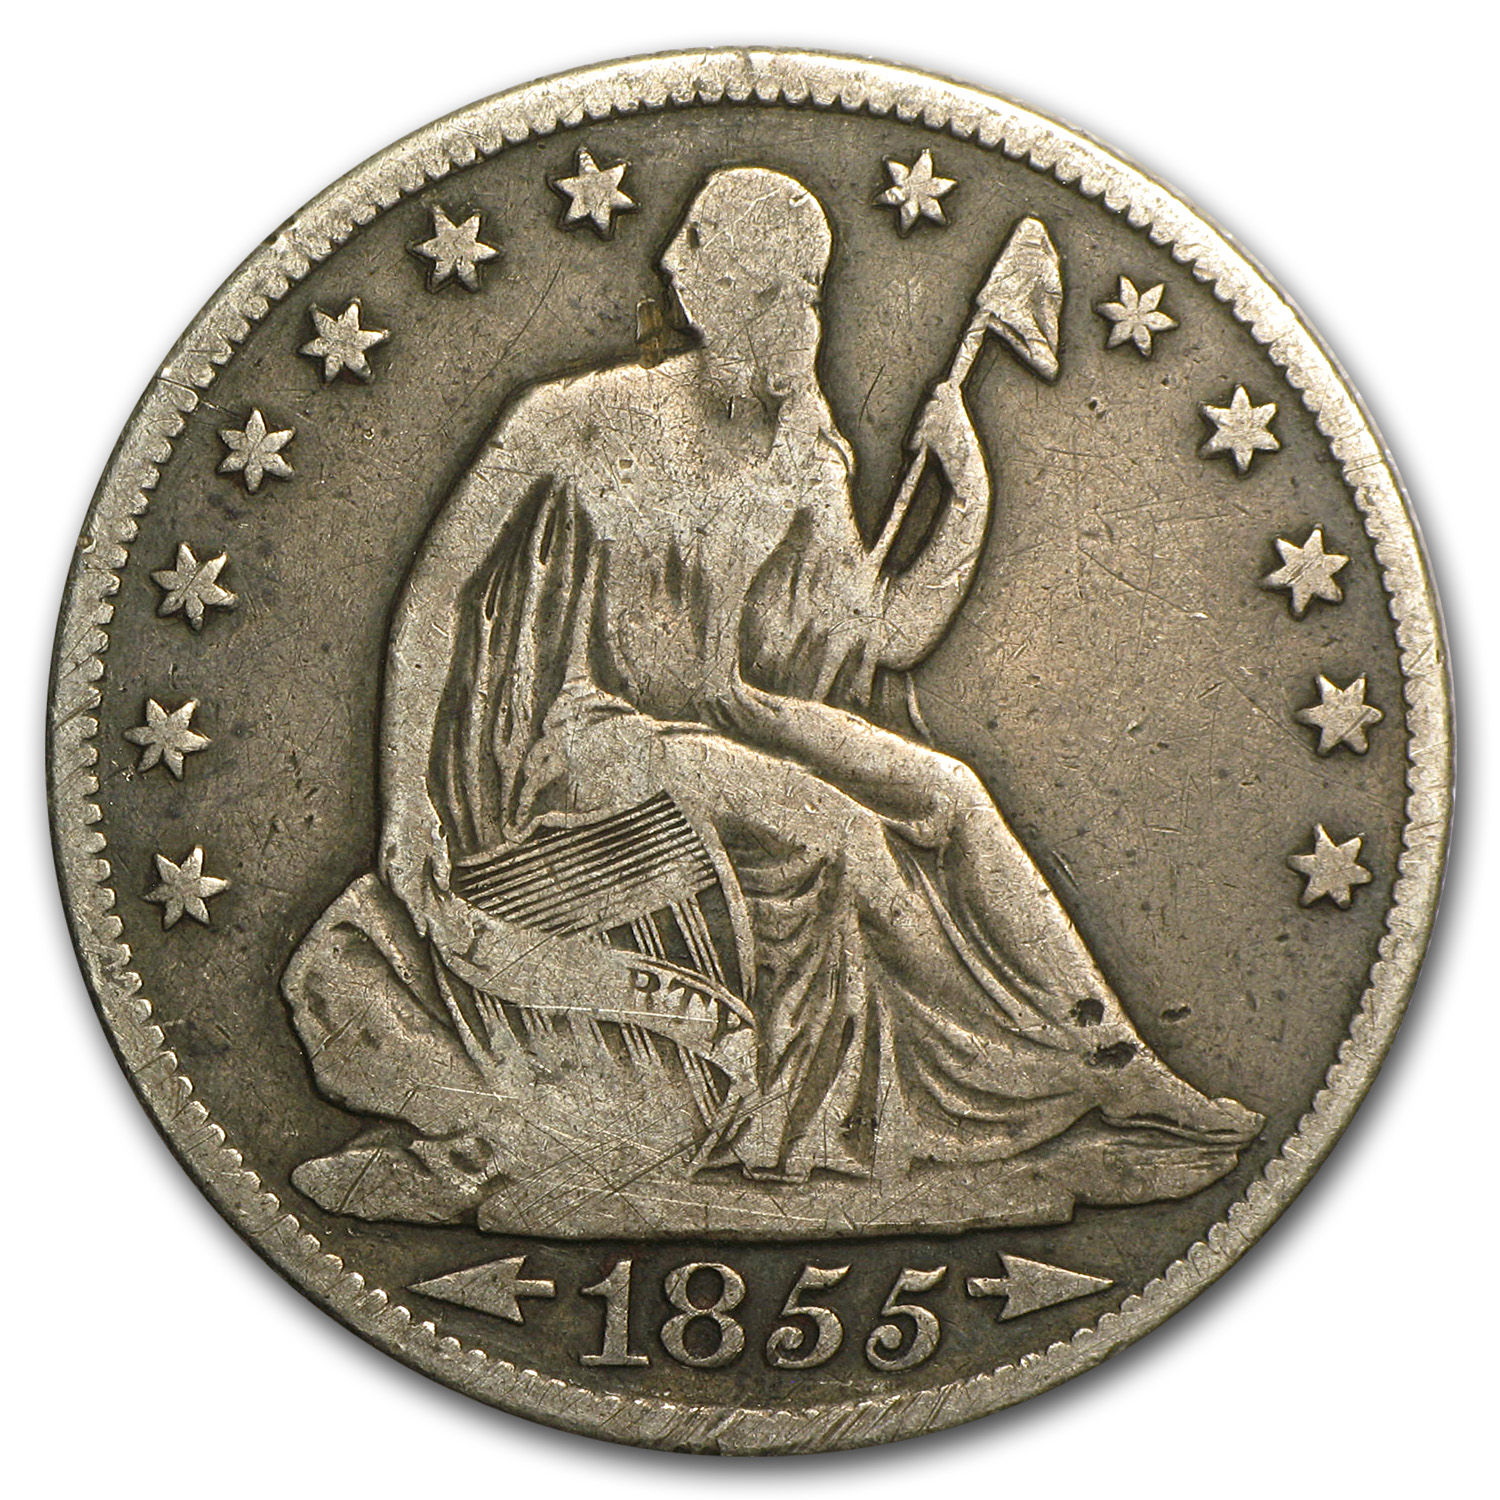 1855-O Liberty Seated Half Dollar w/Arrows Fine